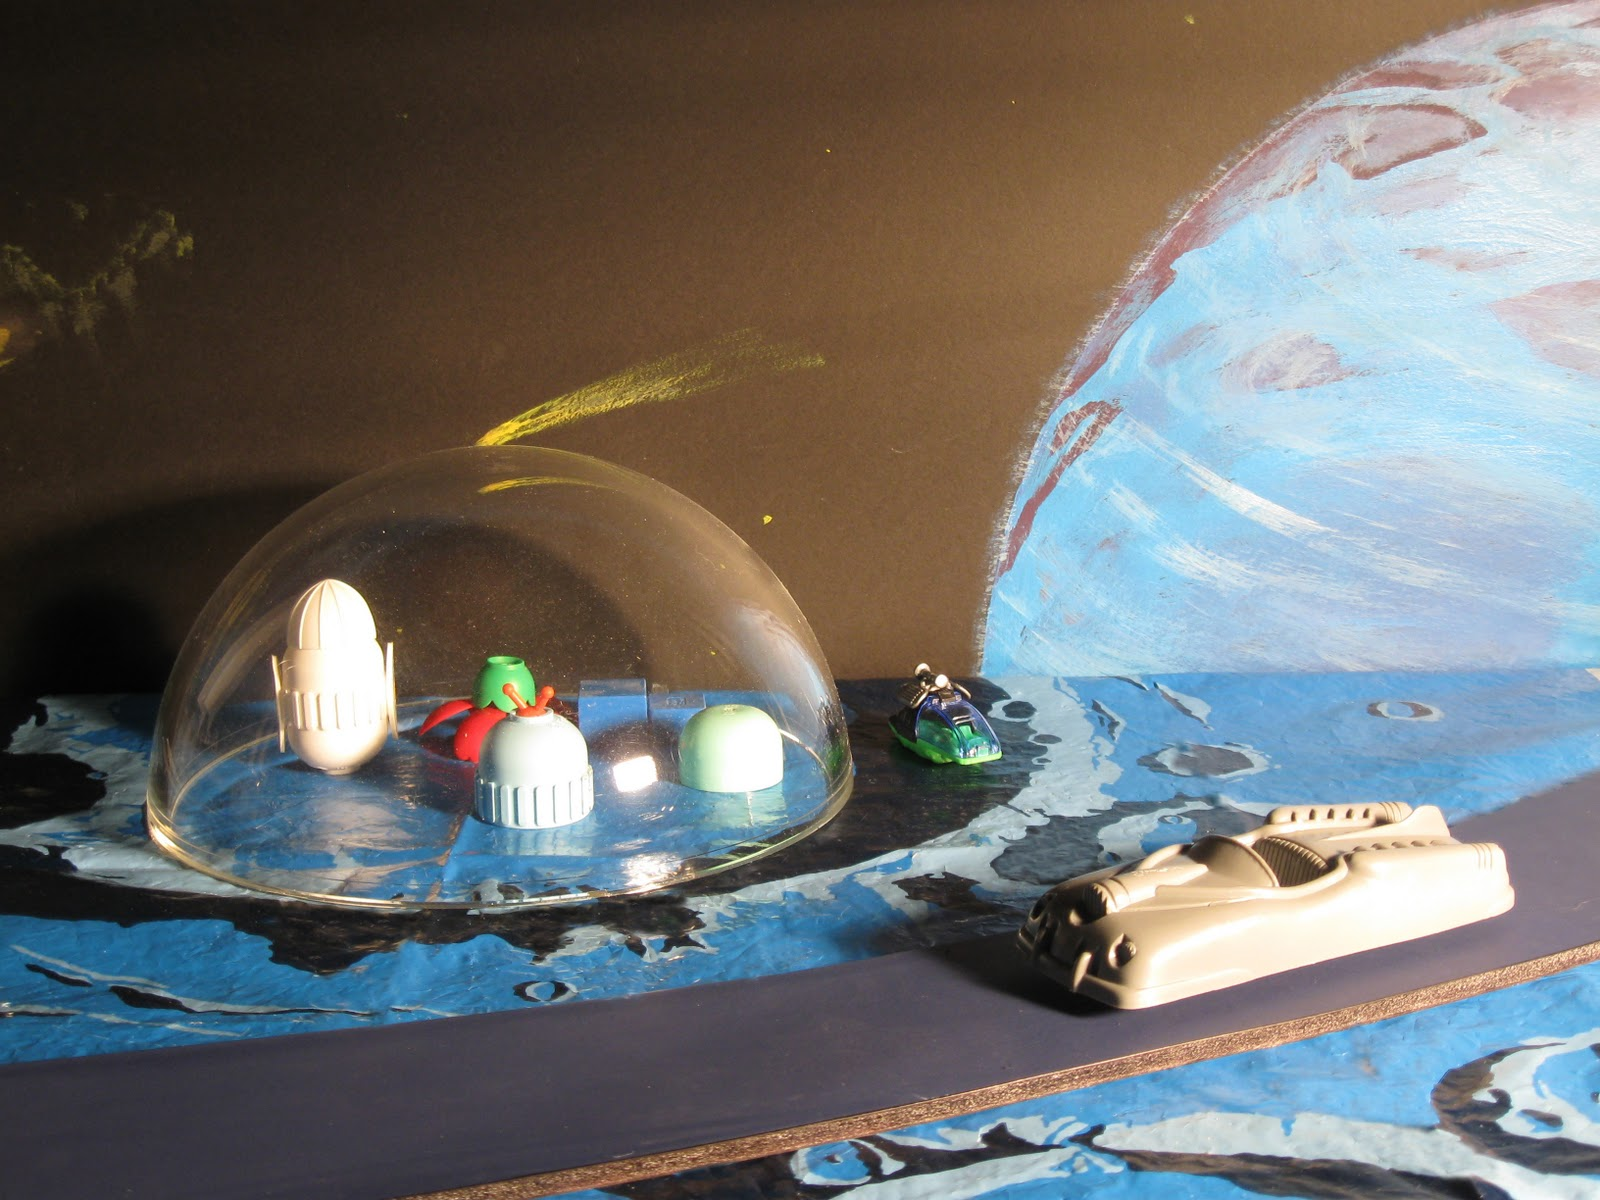 NASA Space Diorama - Pics about space